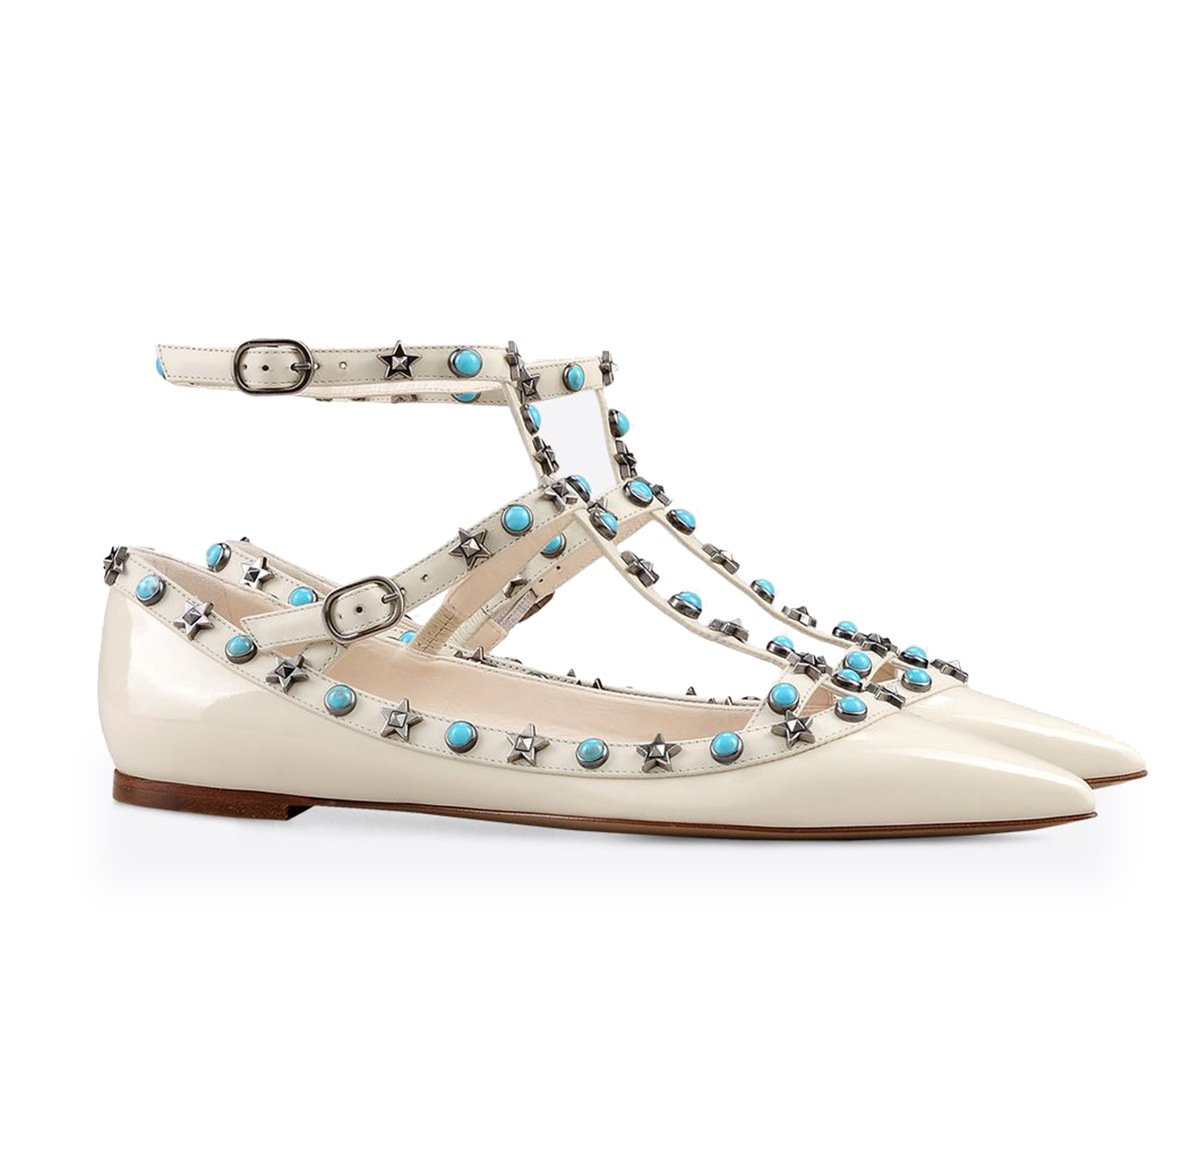 White Women's Sandals Shallow Mouth Metal Rivet Single shoes colorful Nails Buckle Tip (Flat shoes)